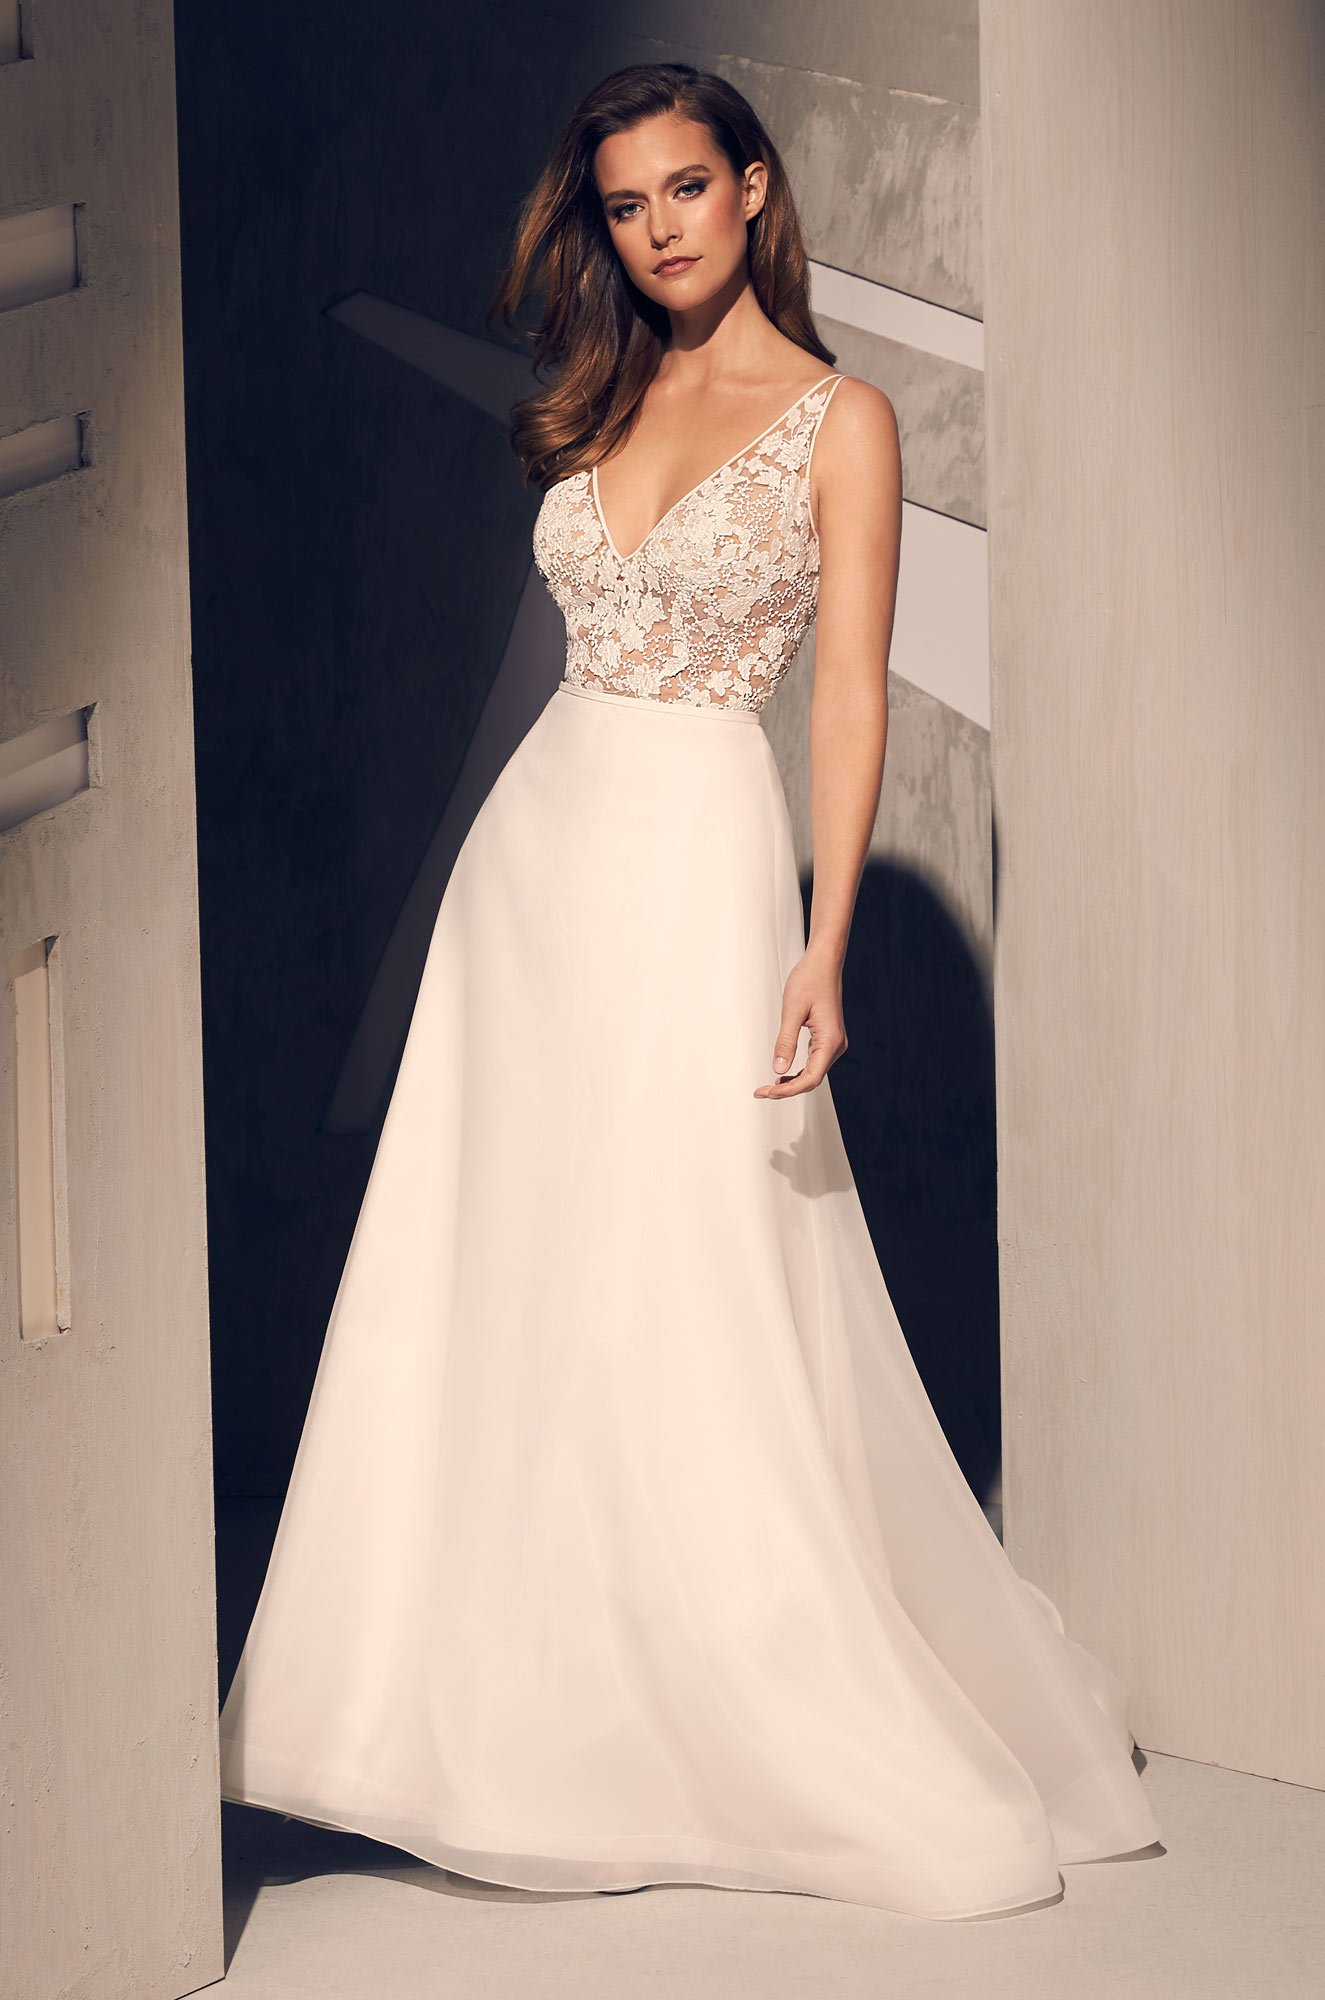 Sheer Sequin Lace Wedding Dress - Style #2210 | Mikaella Bridal